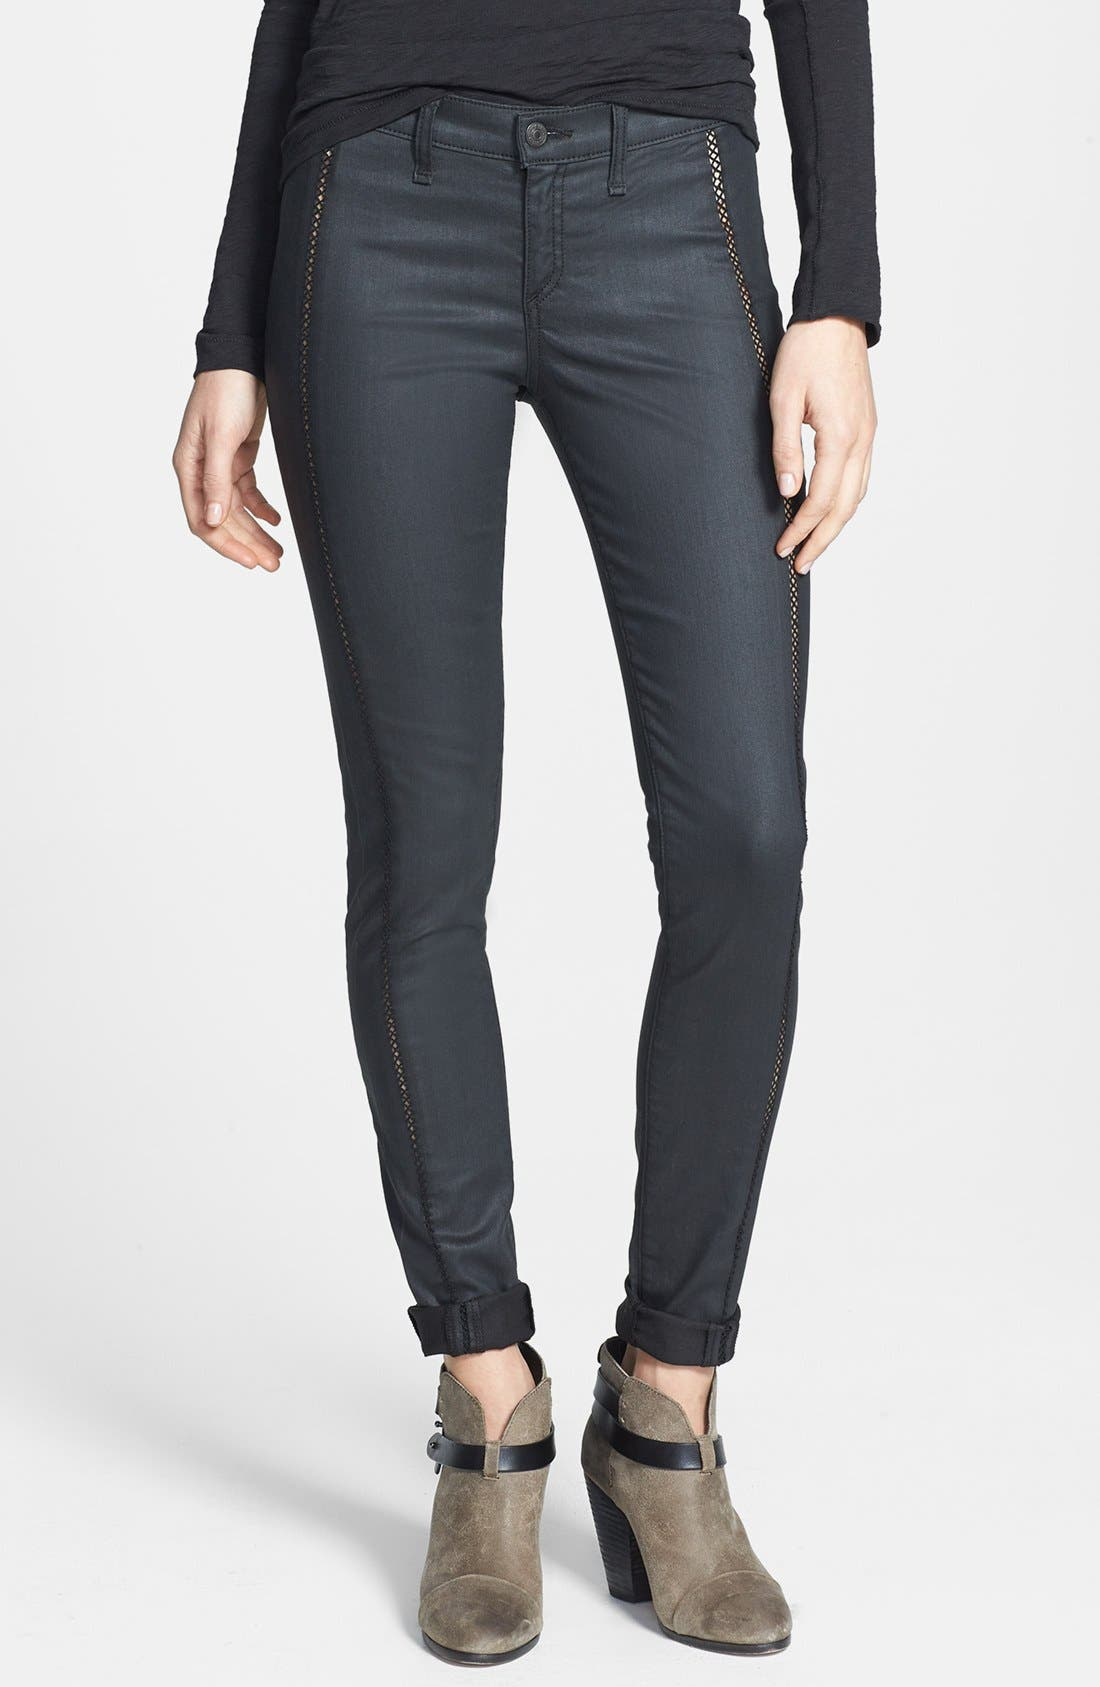 Main Image - rag & bone/JEAN 'Separating' Coated Open Detail Skinny Jeans (Shore Ditch)